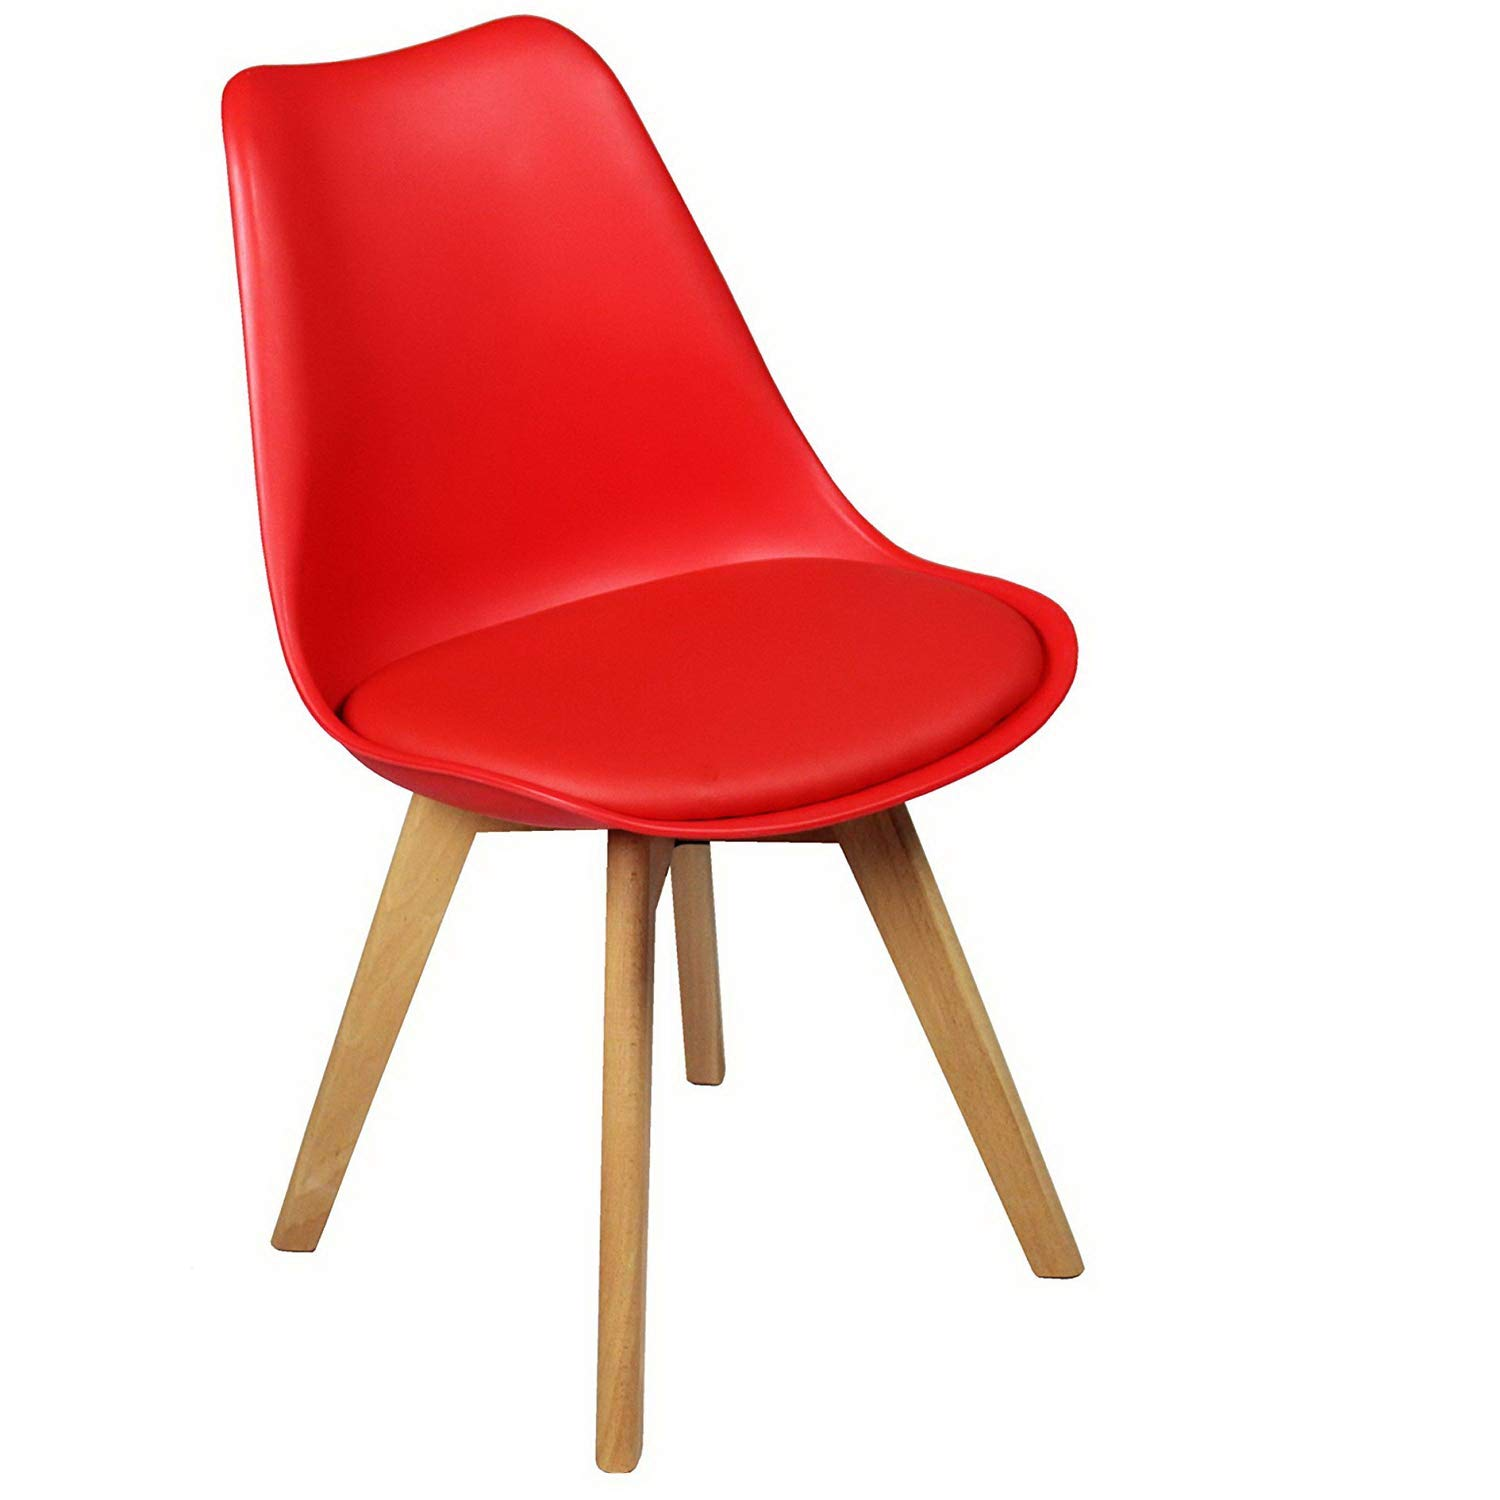 2 x Charles Jacobs Modern Tulip Style Chairs With Solid Beech Legs - Choice of Colours (Black)